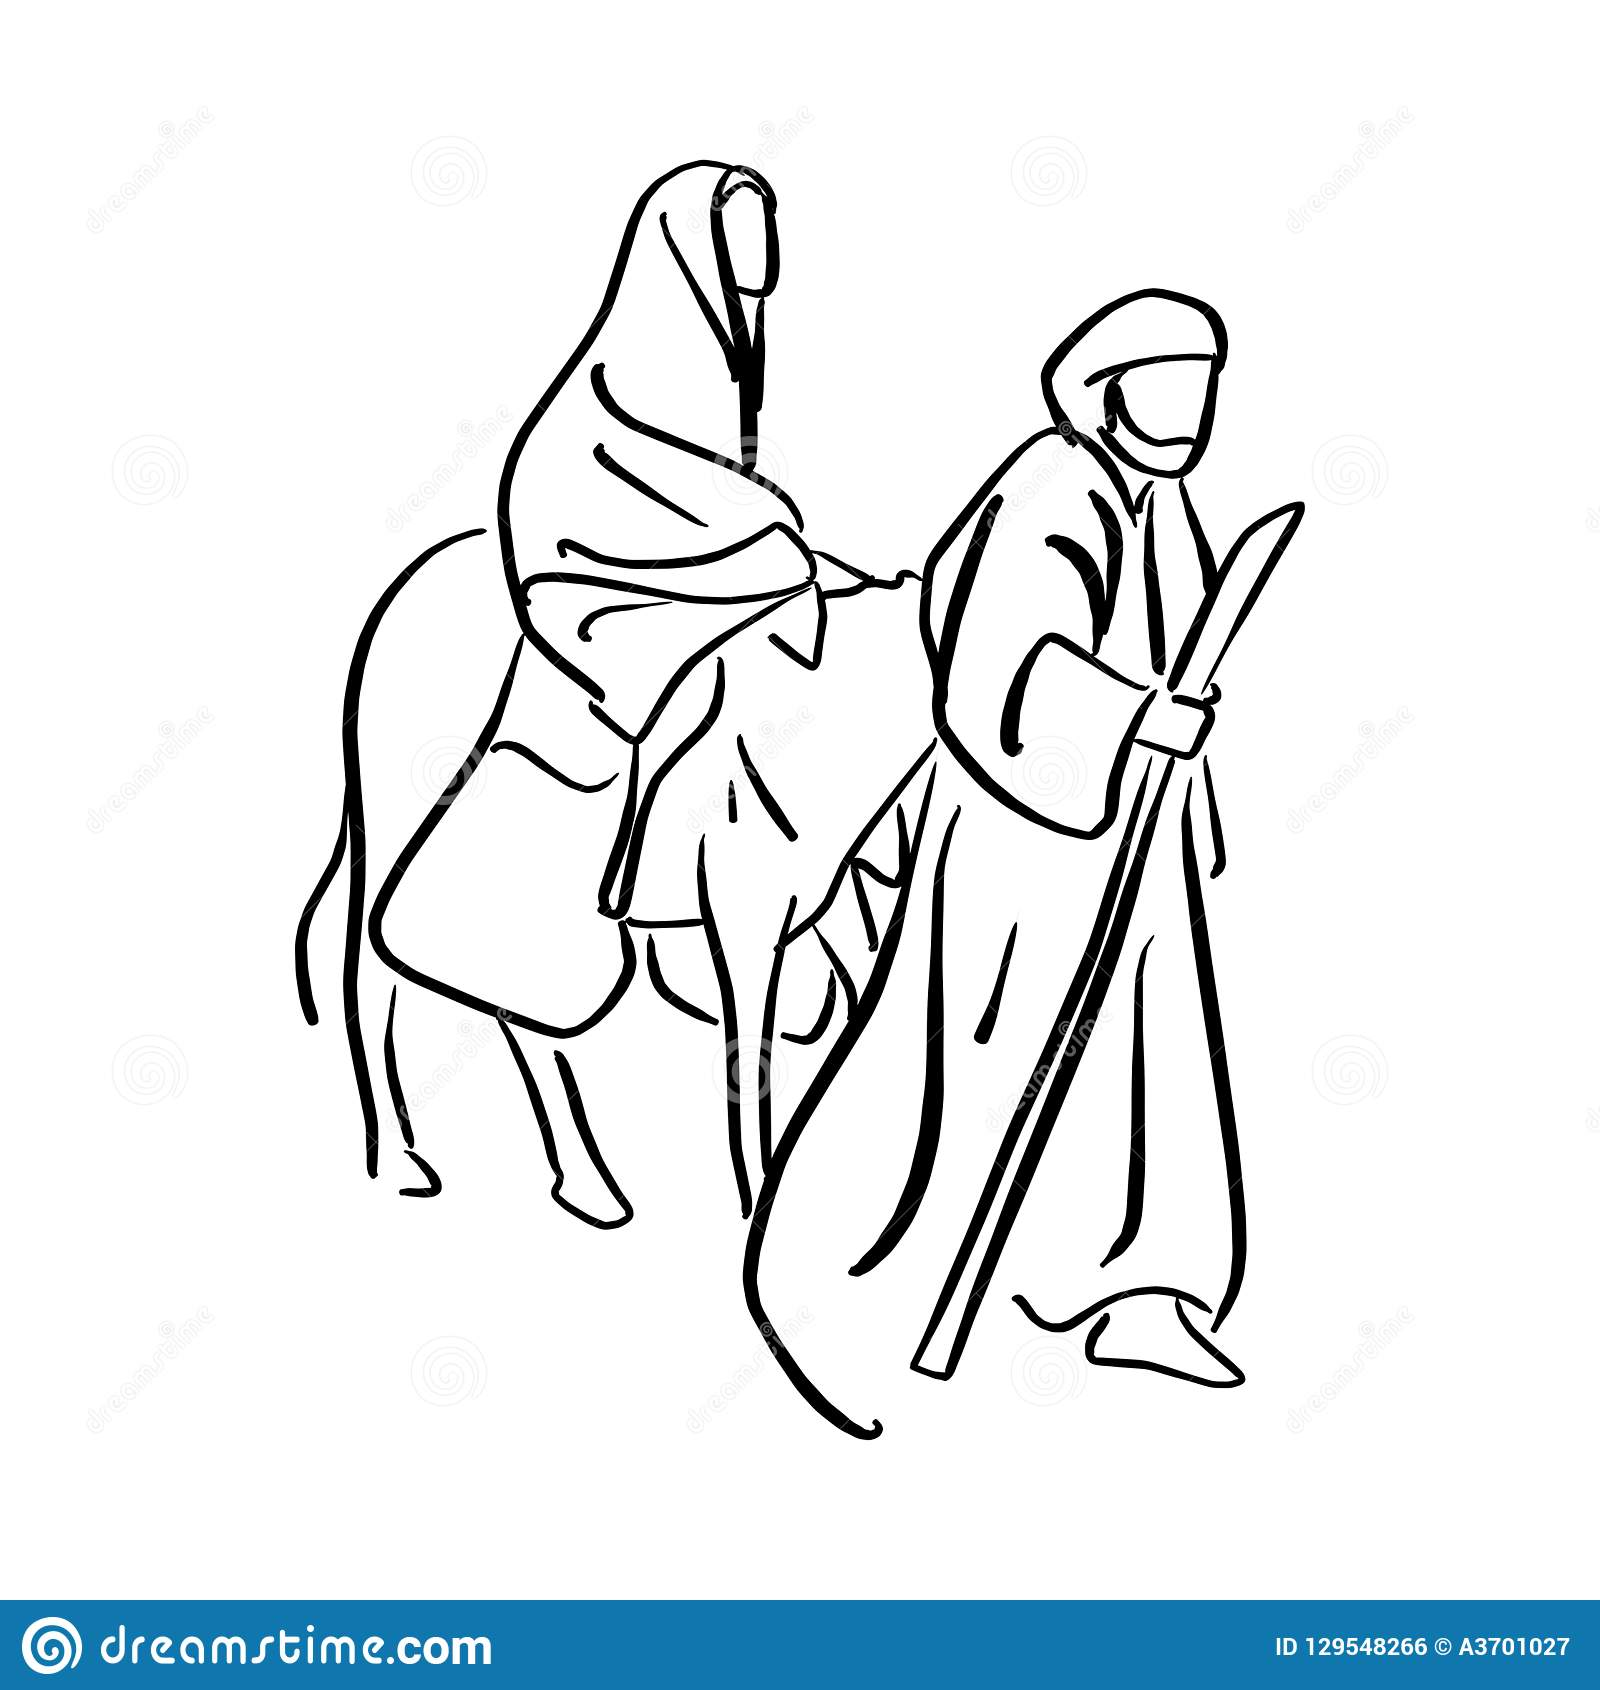 Mary And Joseph Silhouette Royalty Free Cliparts, Vectors, And Stock  Illustration. Image 63119072.